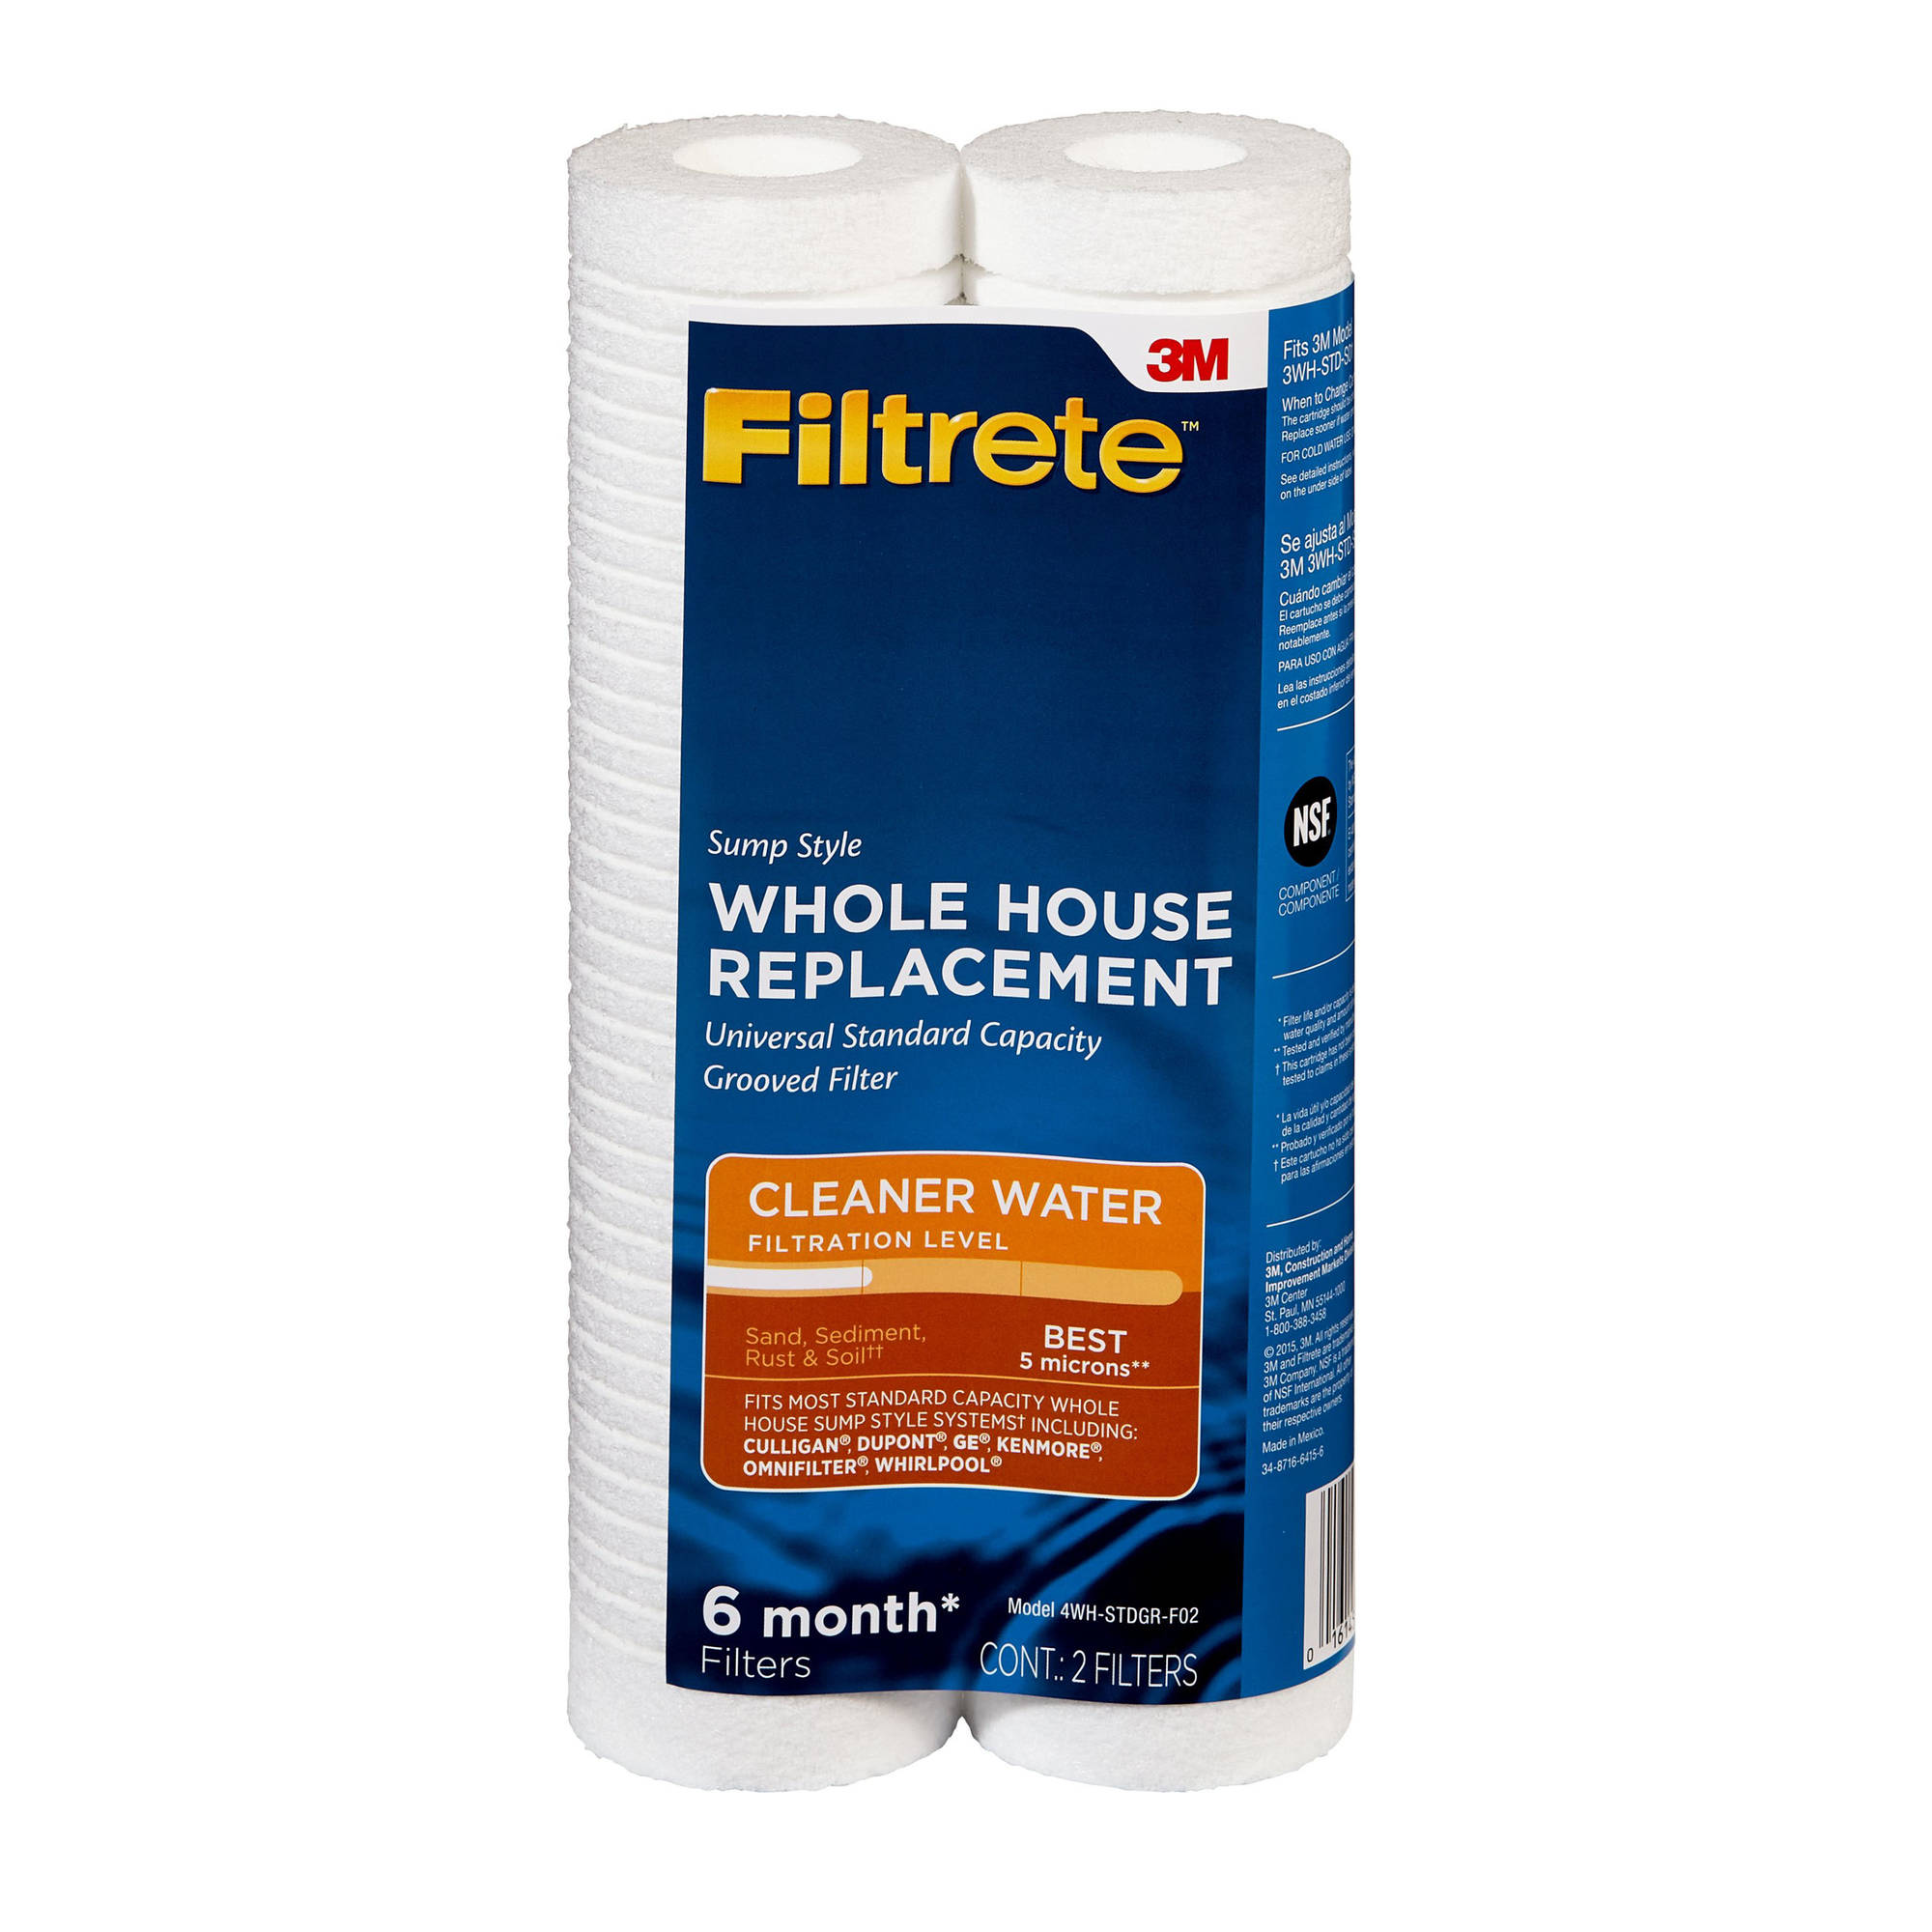 "Filtrete"" Standard Capacity, Grooved Replacement Filter, Sump Style (sediment - best) - 2 pack"